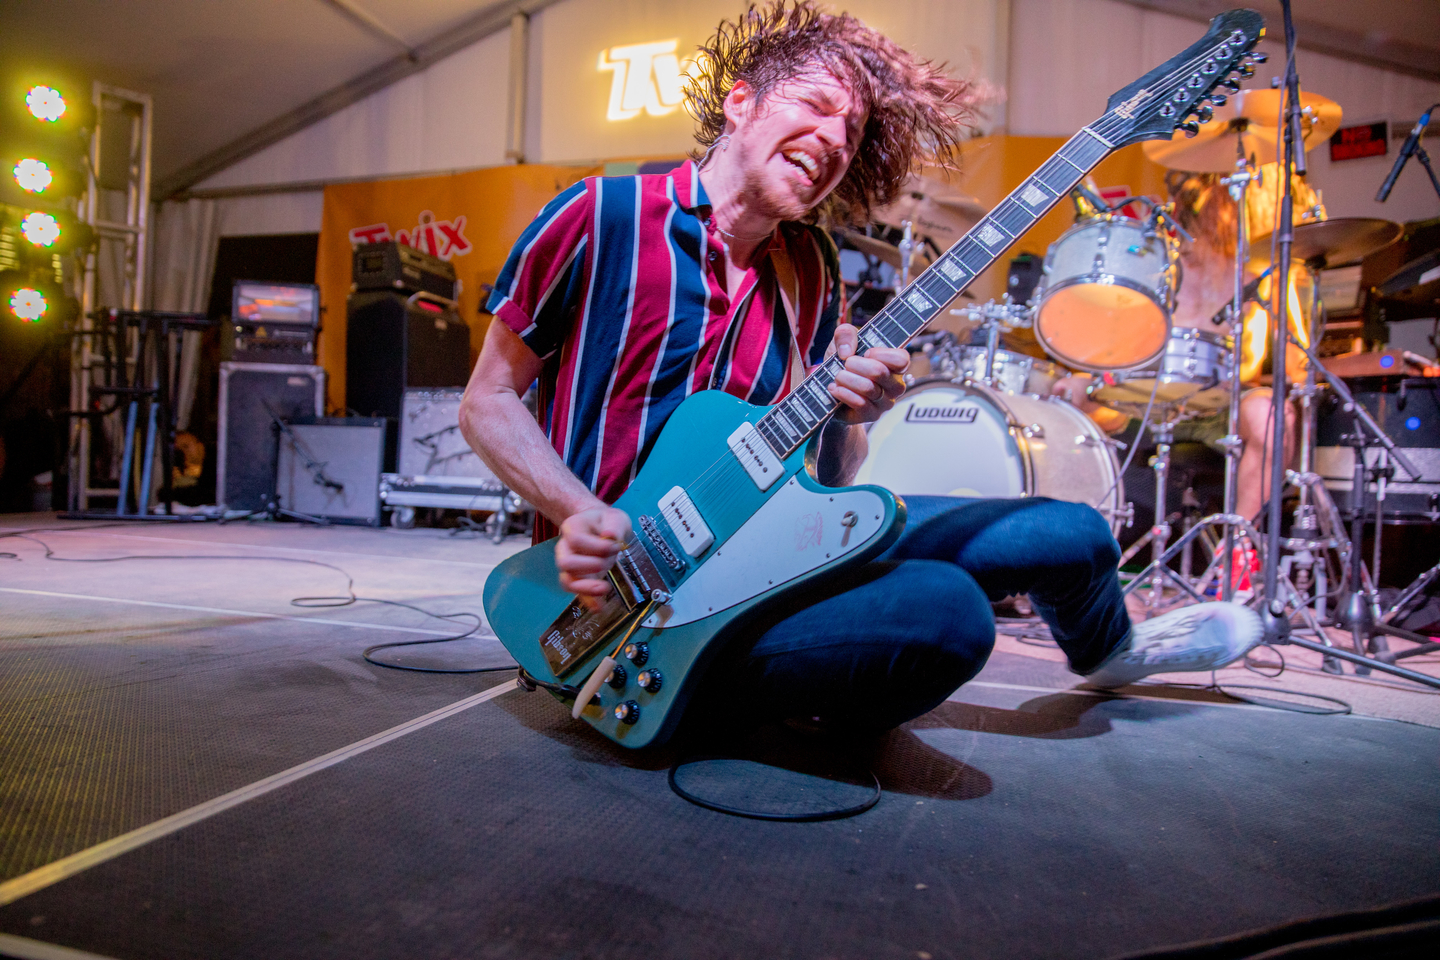 Black Pistol Fire, presented by TWIX House of Duos. Photo by Cris DeWitt